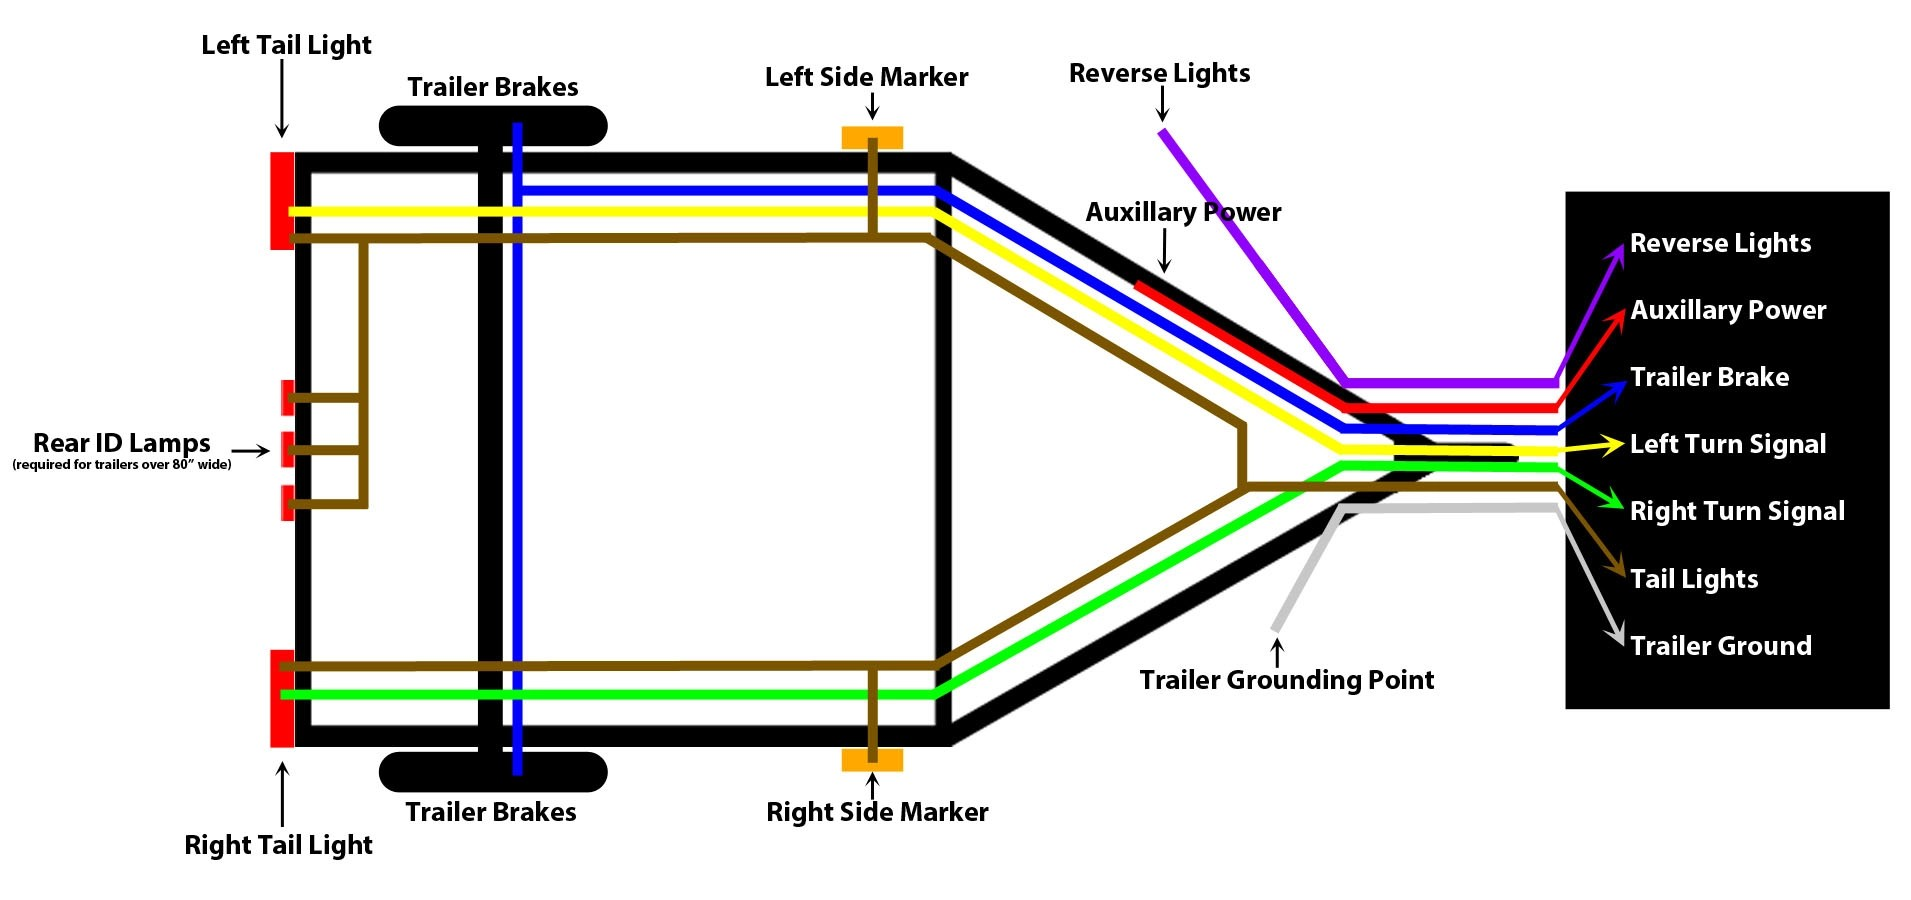 exiss horse trailer wiring diagram wiring diagram trailer wiring diagram ?resize\u003d665%2C313